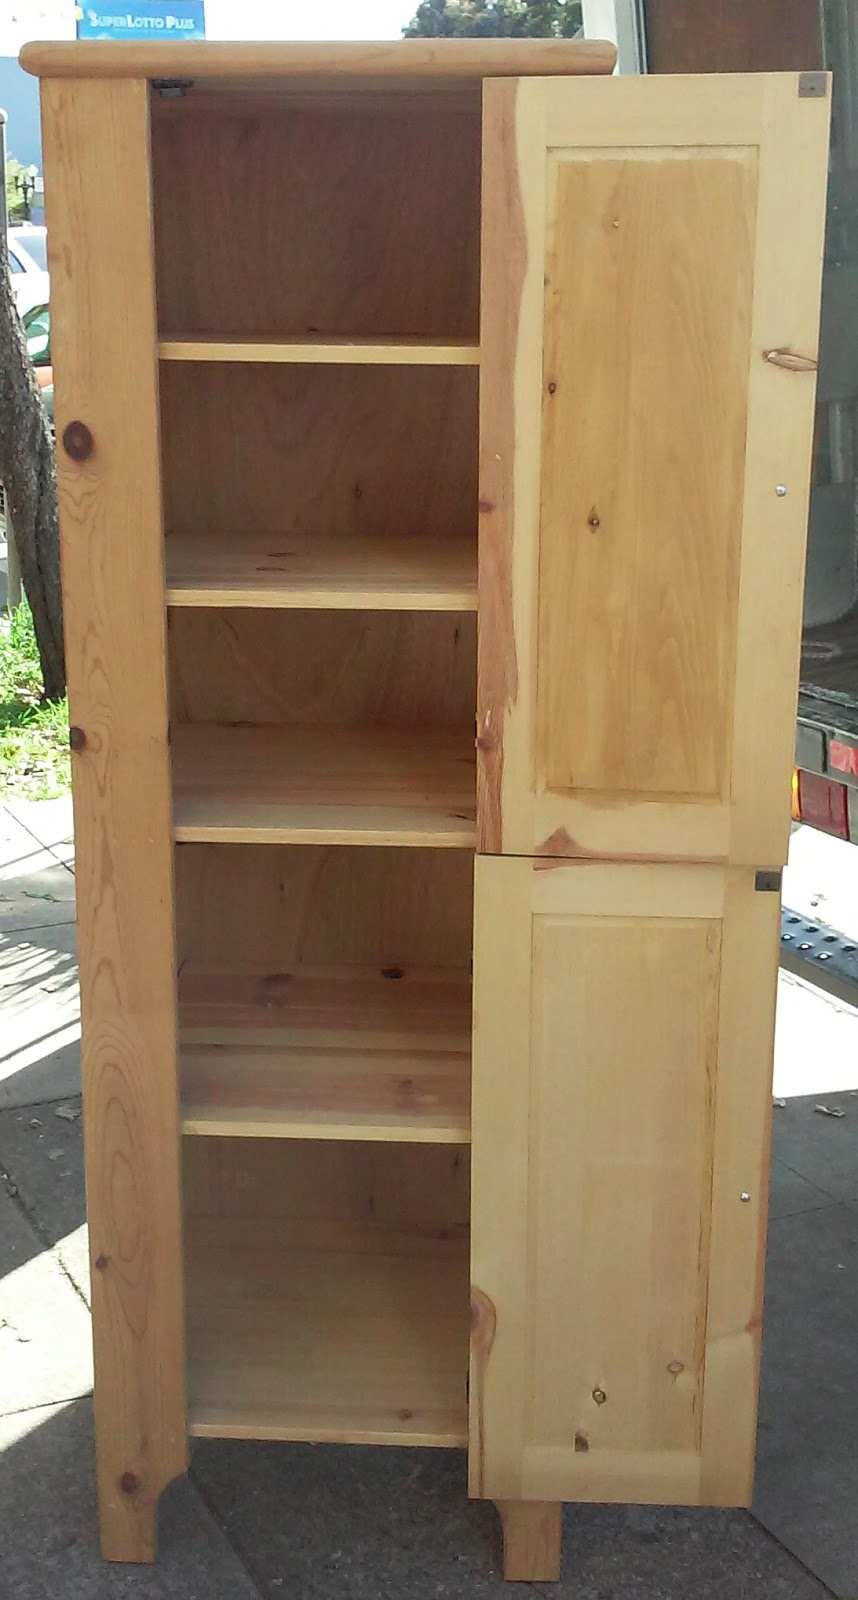 Uhuru Furniture Collectibles Sold 2 39 X 5 1 2 39 Pine Pantry Cabinet 70